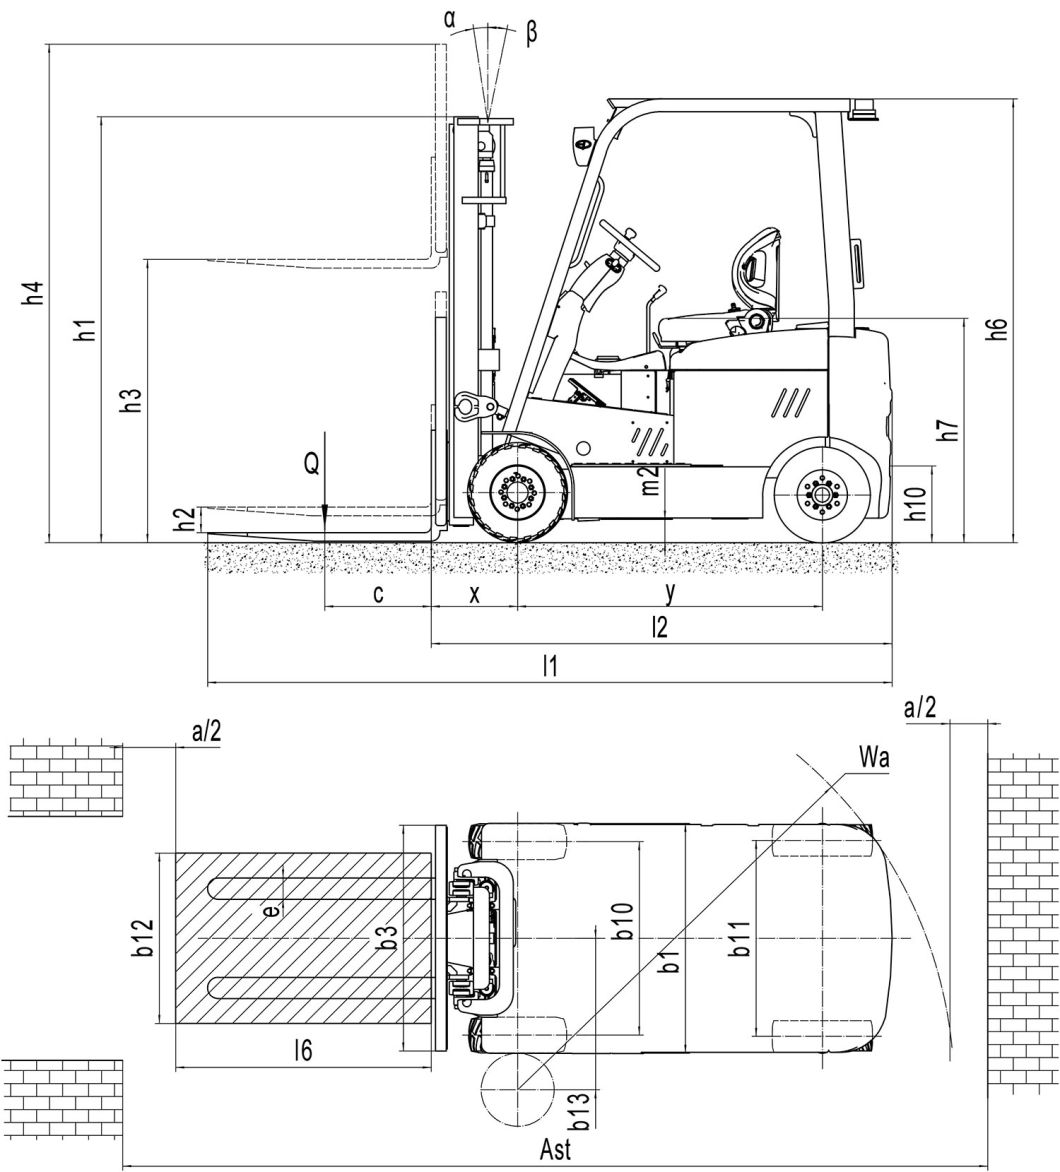 https://d347awuzx0kdse.cloudfront.net/simpro/content-file/2-0t-Based-on-Li-ion-Battery-Designed-Electric-Forklift-Truck.jpg